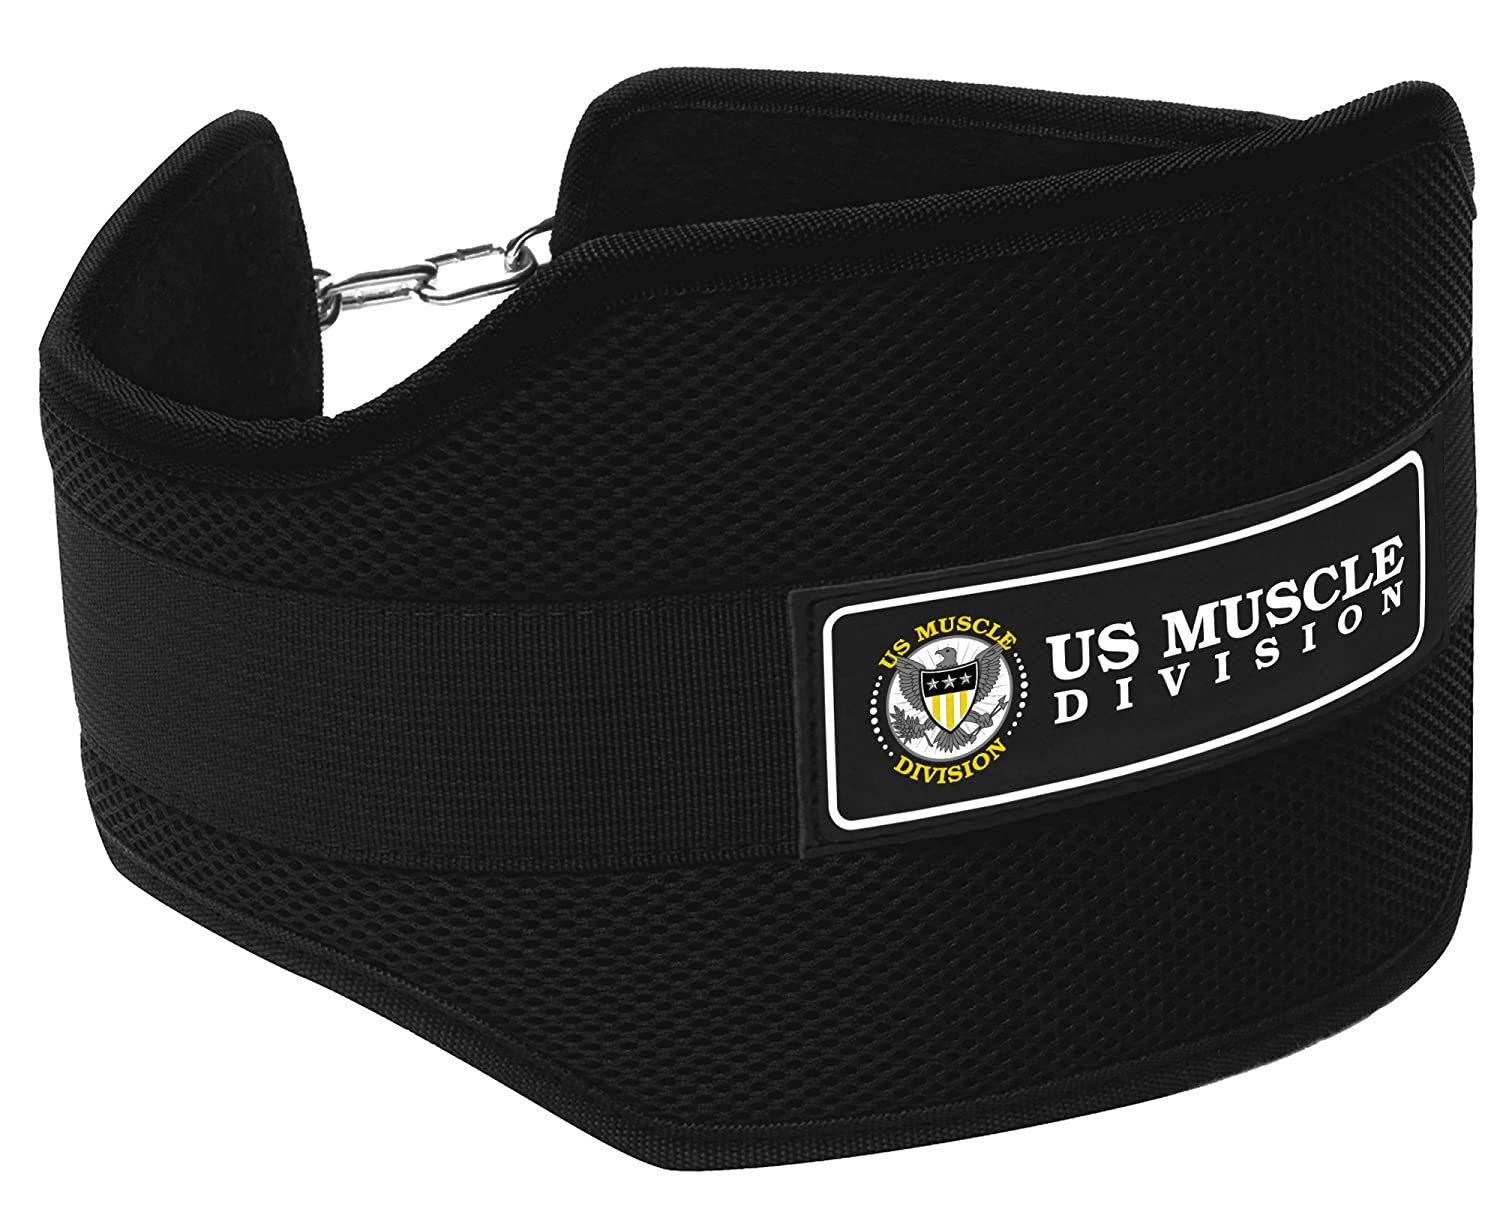 Amazon.com : US Muscle Division Dipping Belt Pro Bodybuilding Dip ...